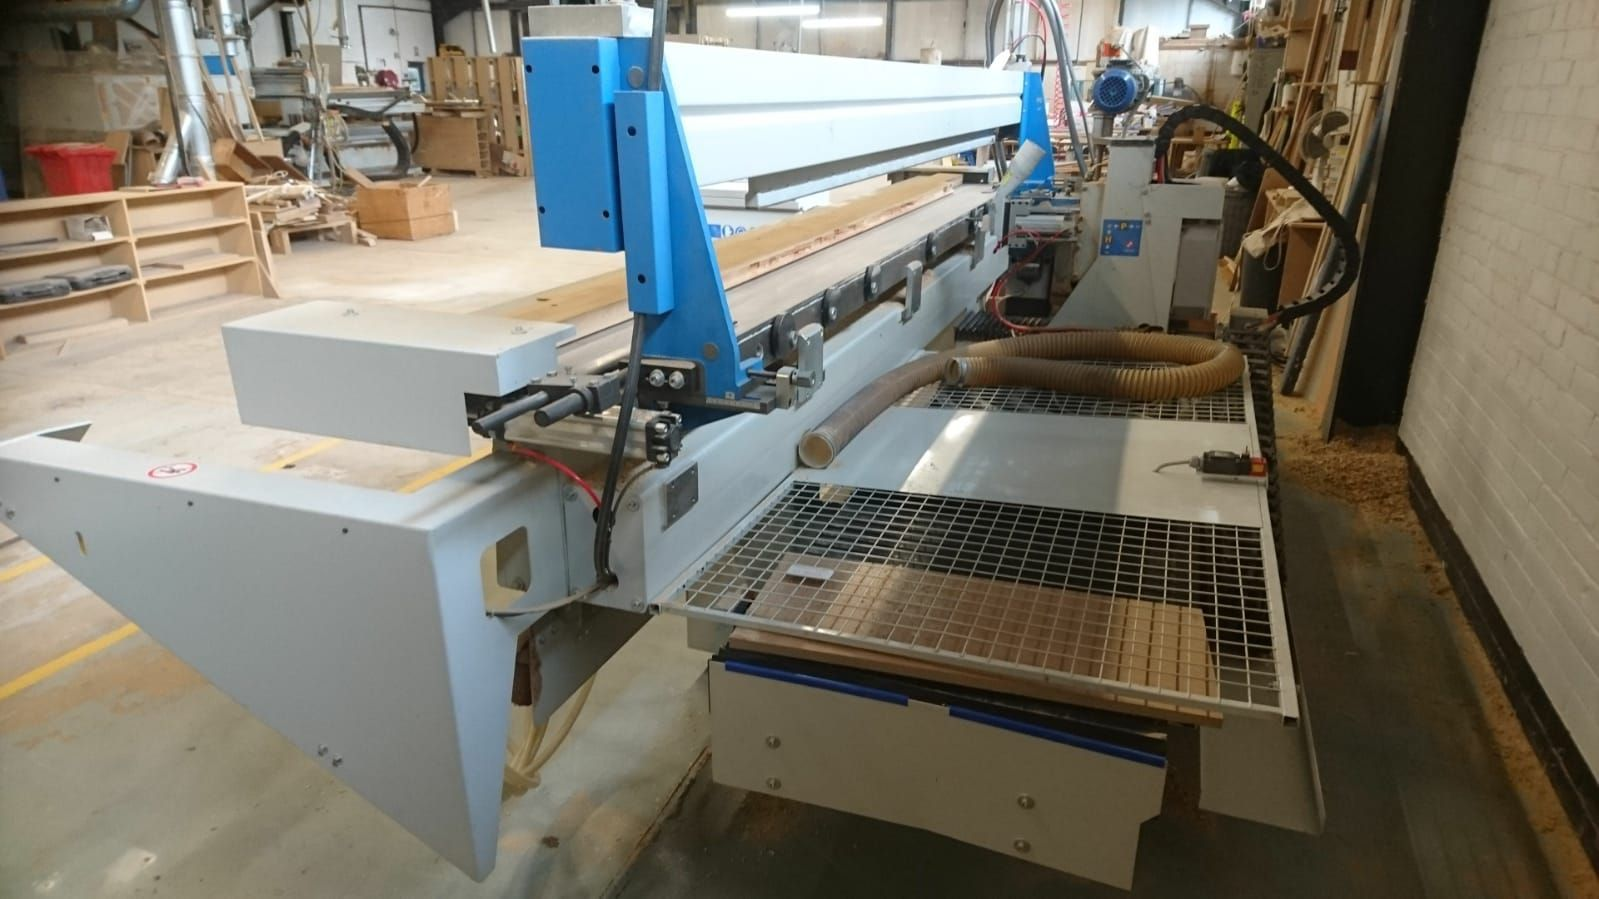 Cnc Woodworking Machinery Uk Cnc woodworking, Woodworking